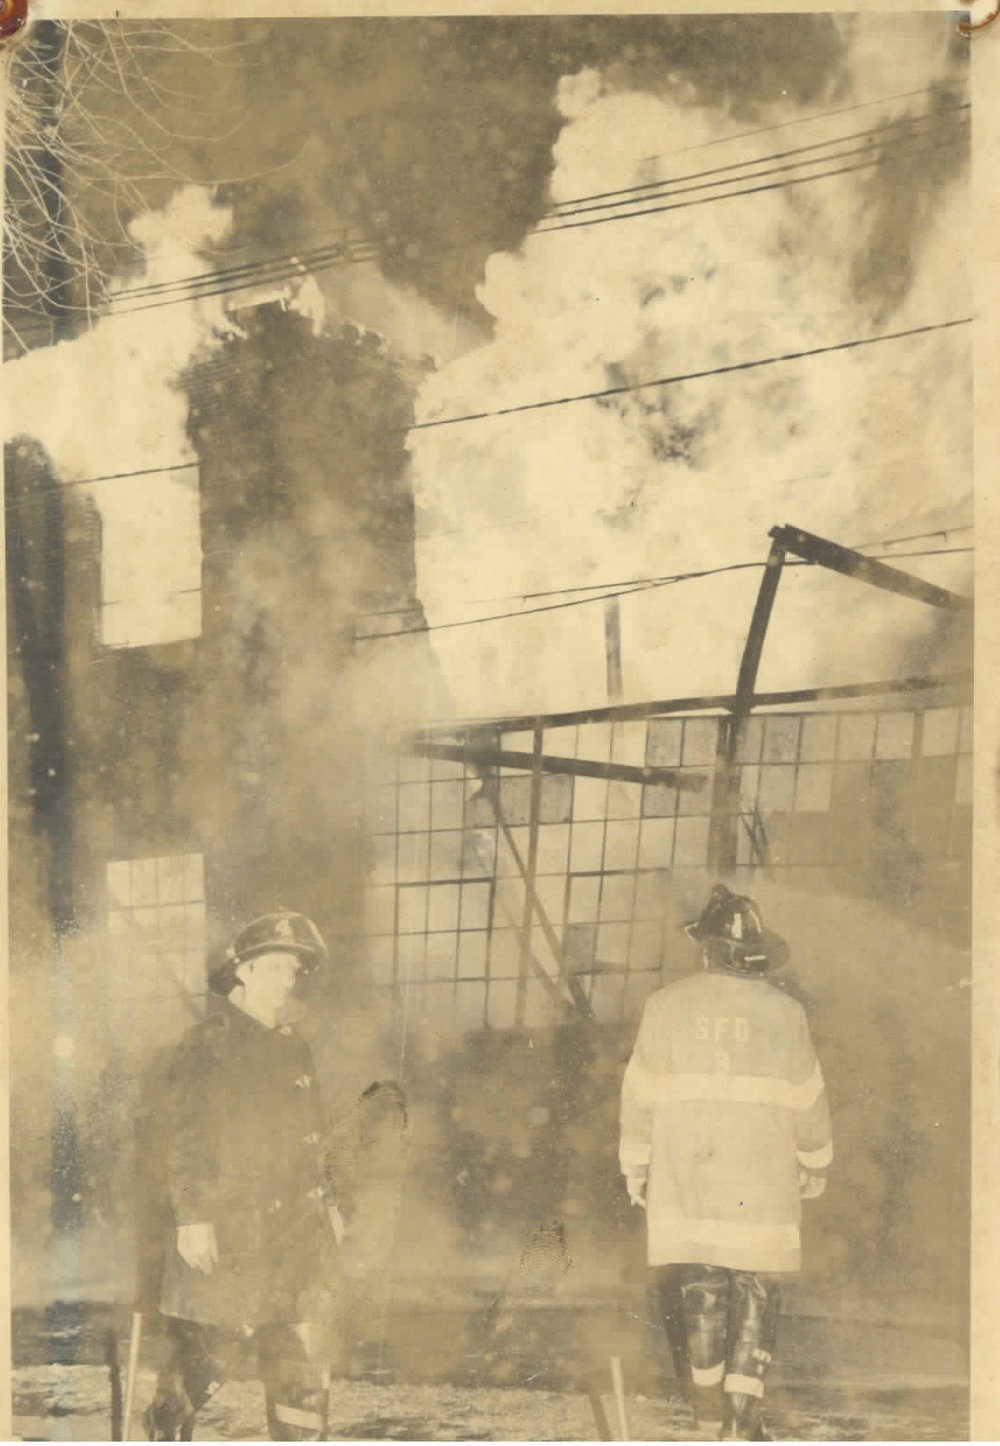 1980 Jan 21.Granetz Warehouse fire_Page_1_Image_0001.jpg